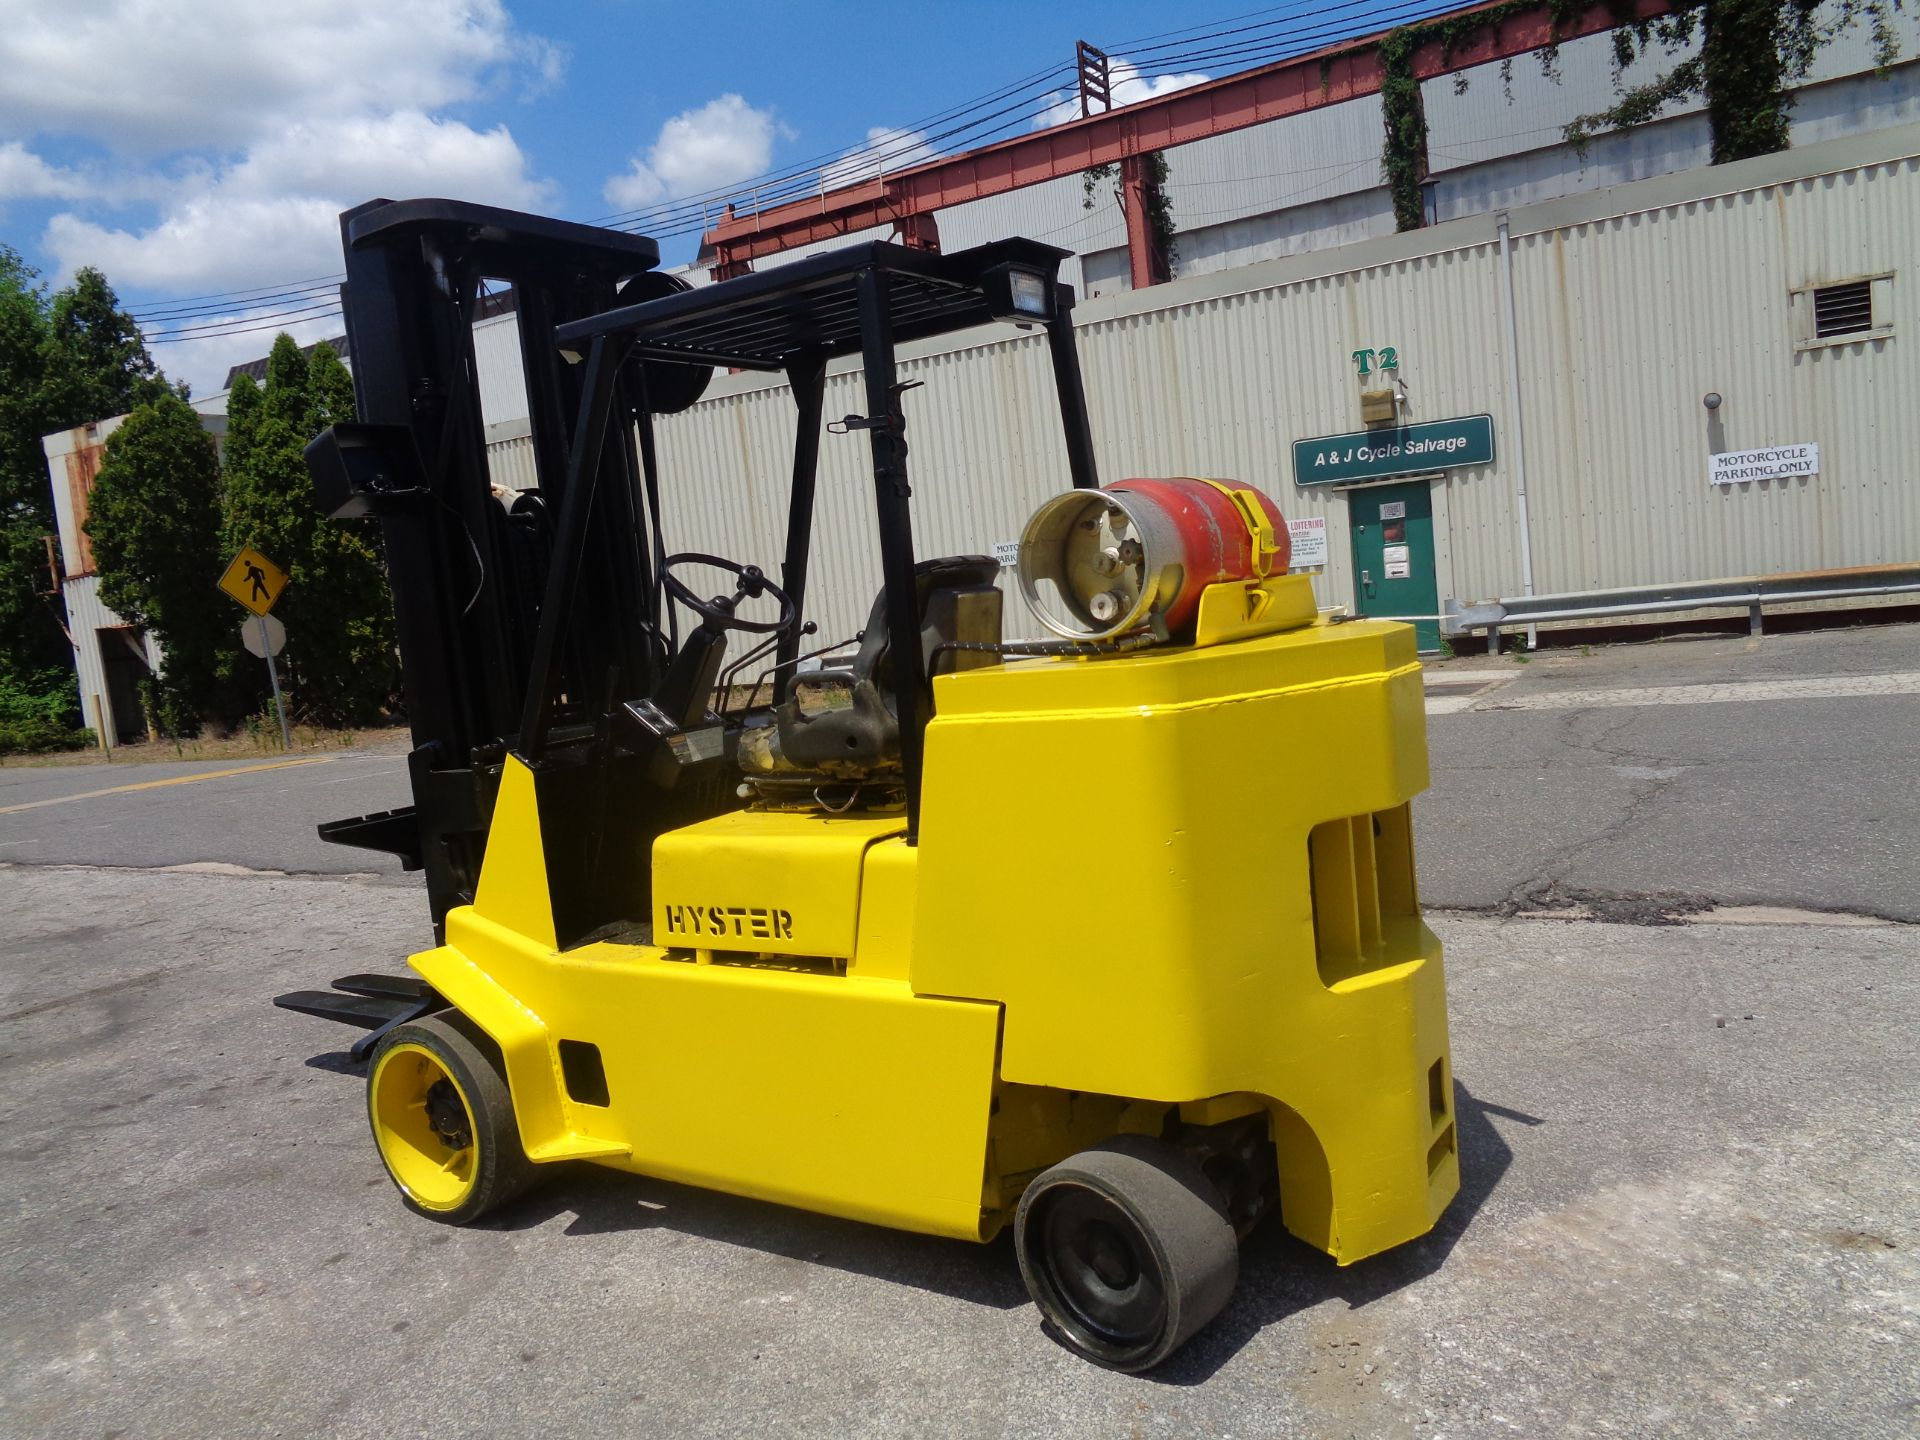 Hyster S120XL 12,000lb Forklift - Image 3 of 14